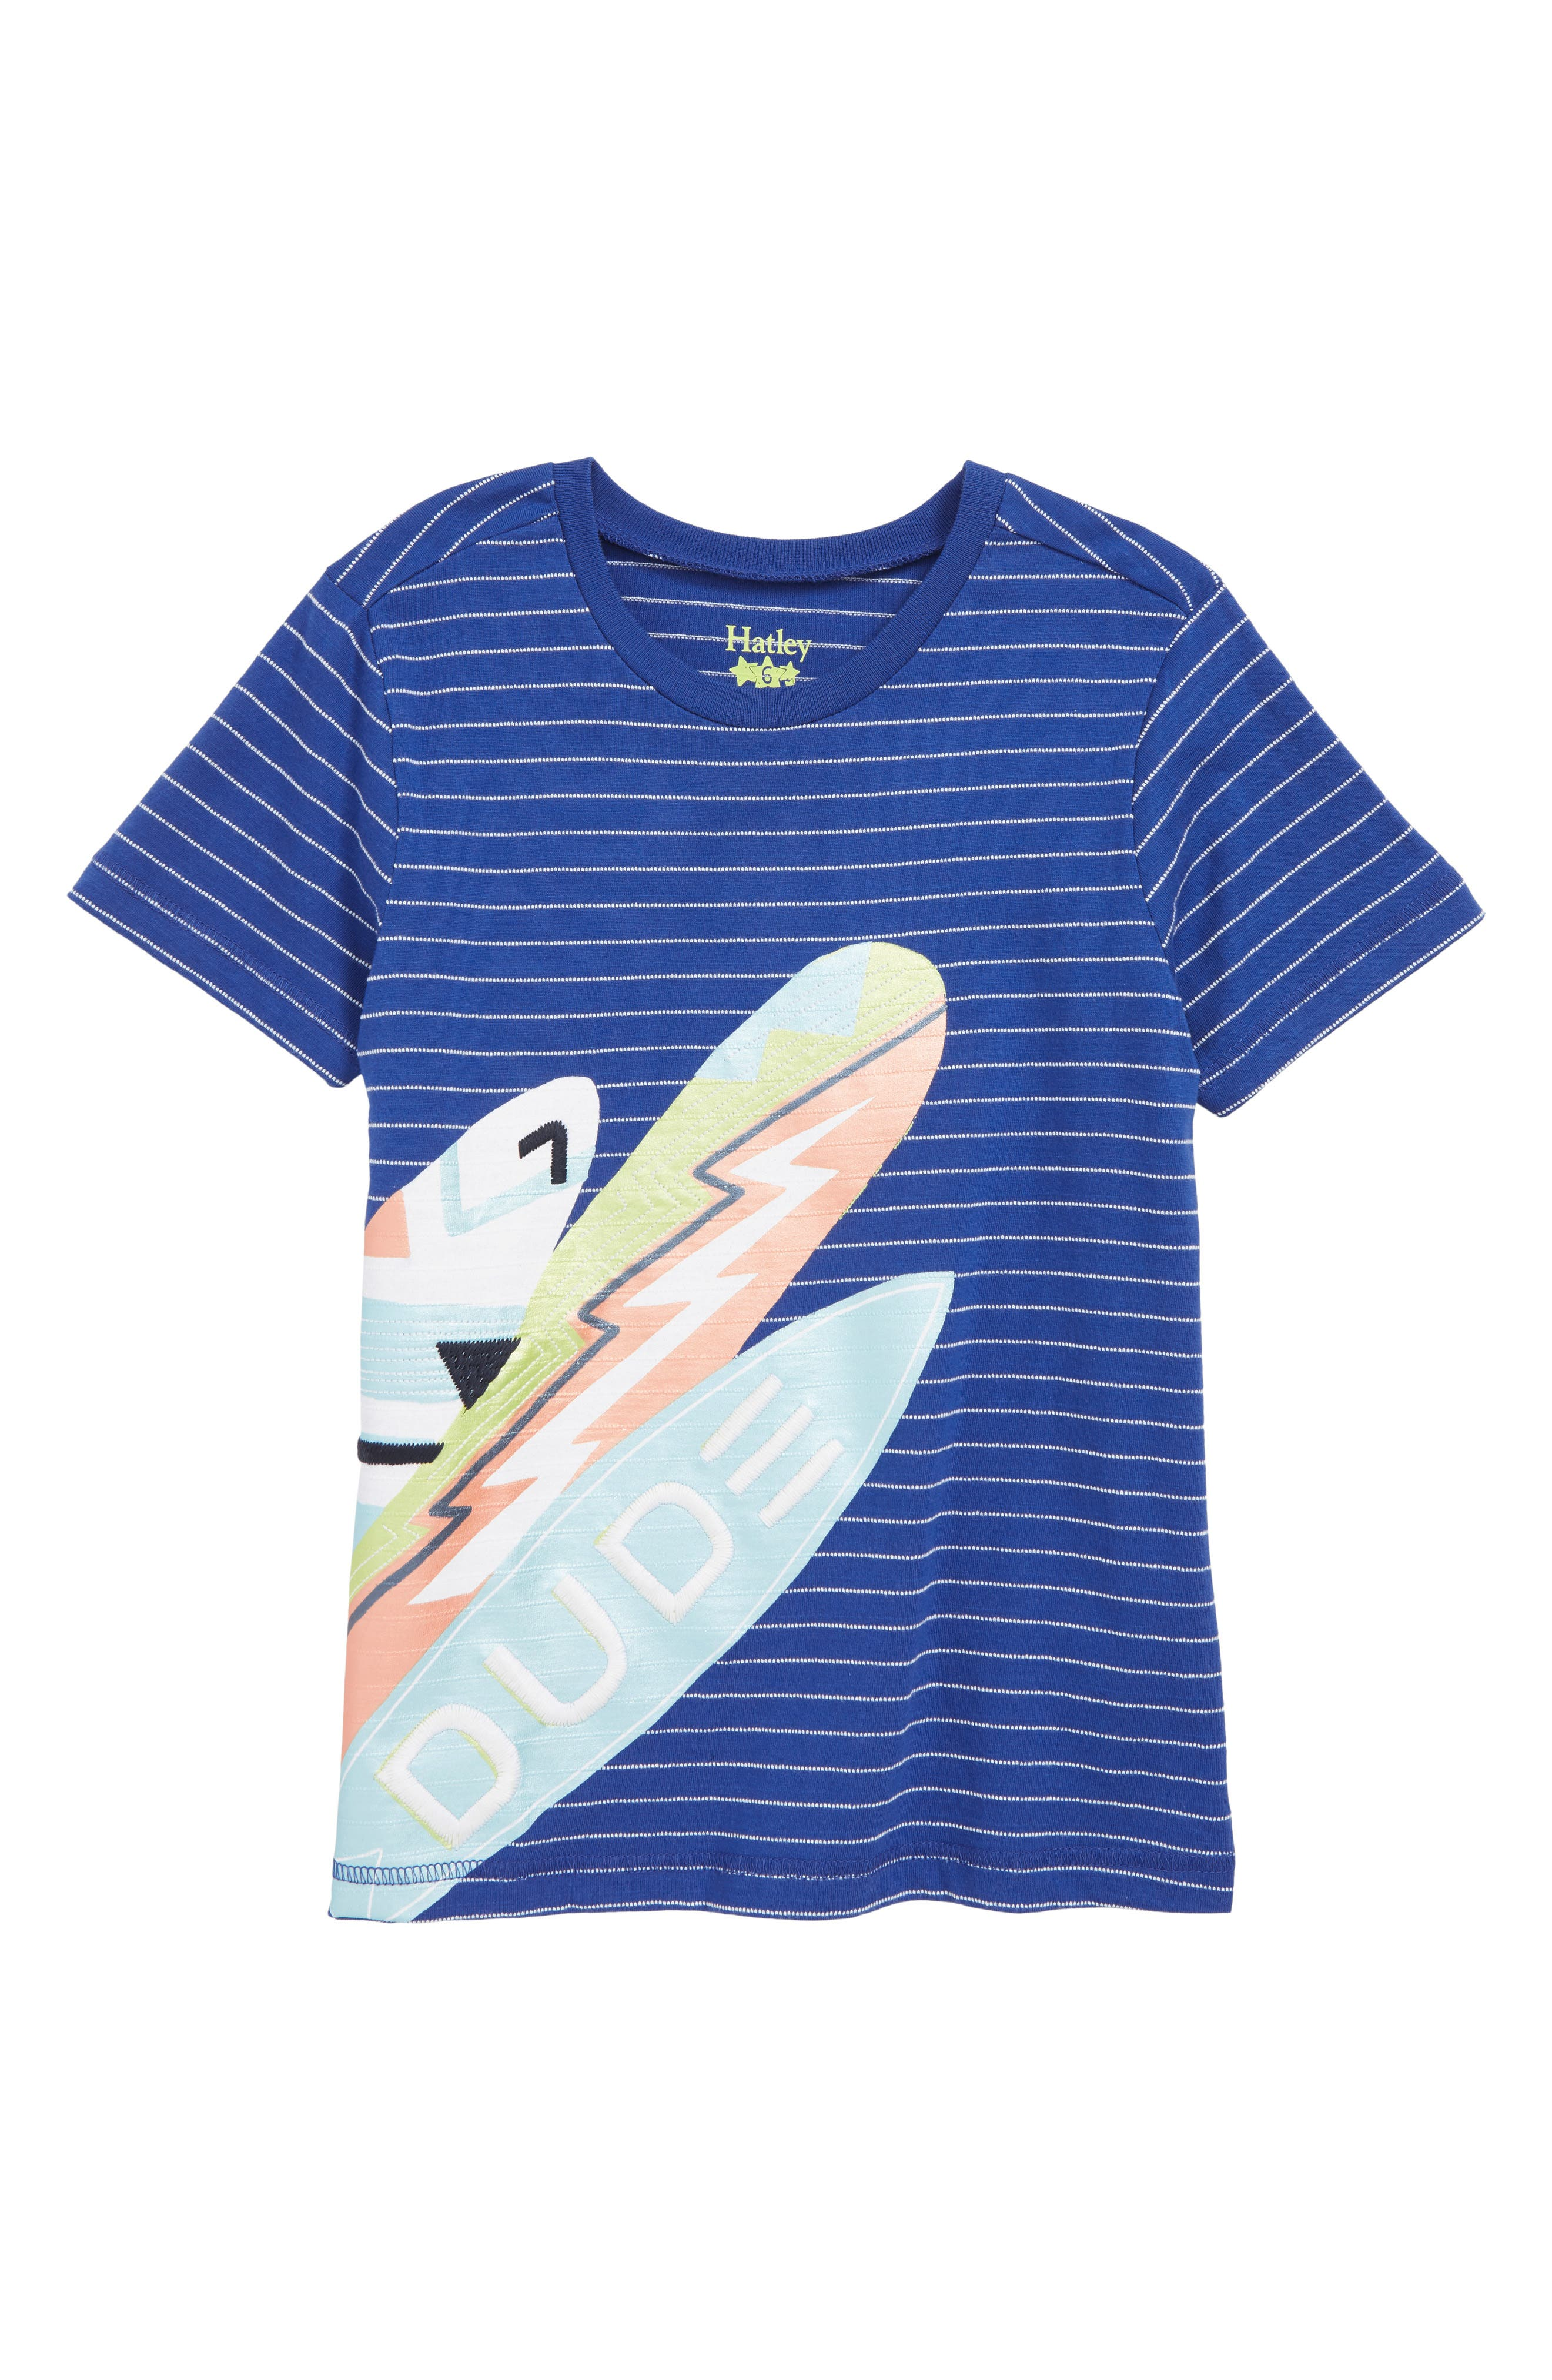 HATLEY Surf Dude Graphic T-Shirt, Main, color, BLUE